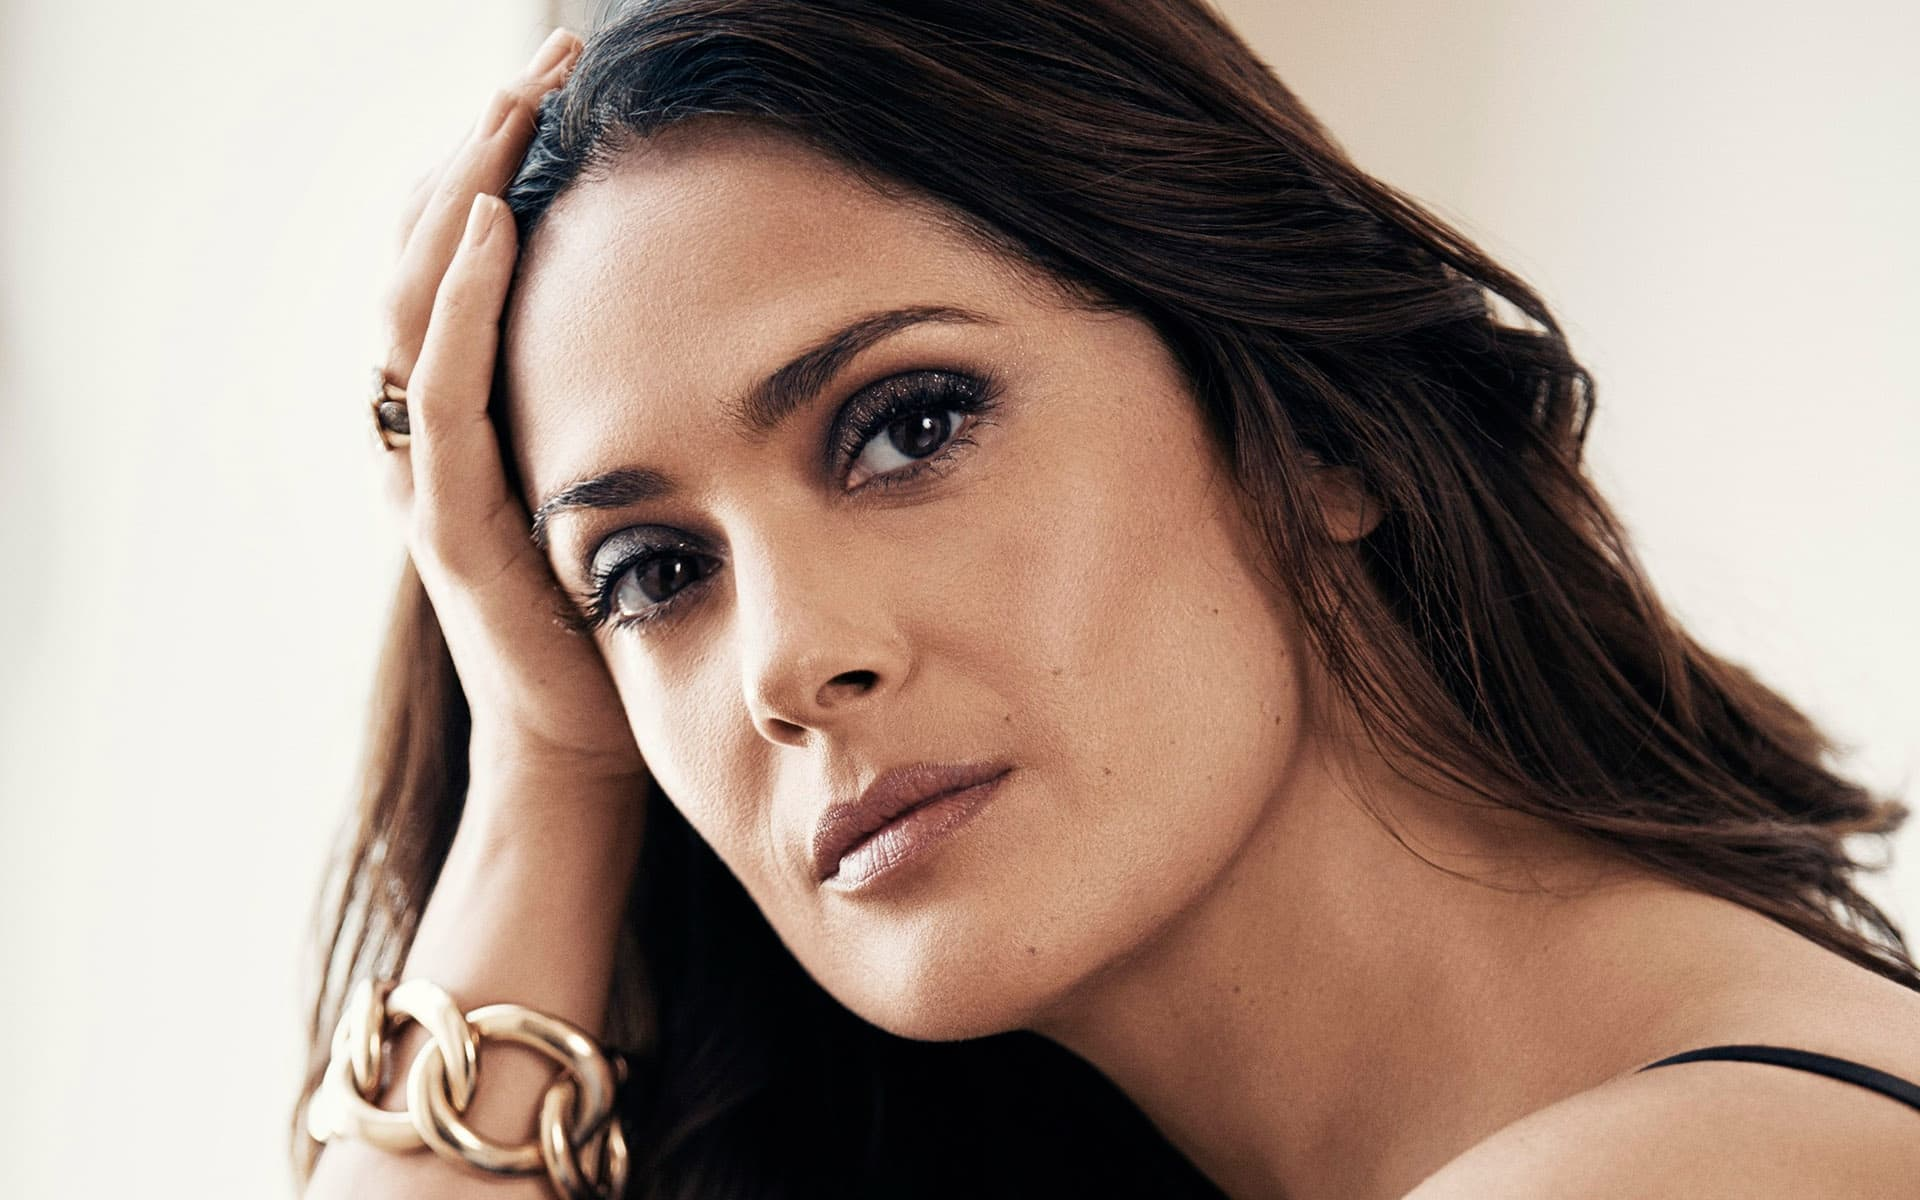 Salma Hayek Wallpapers HD Pictures Photos Images 1920x1200